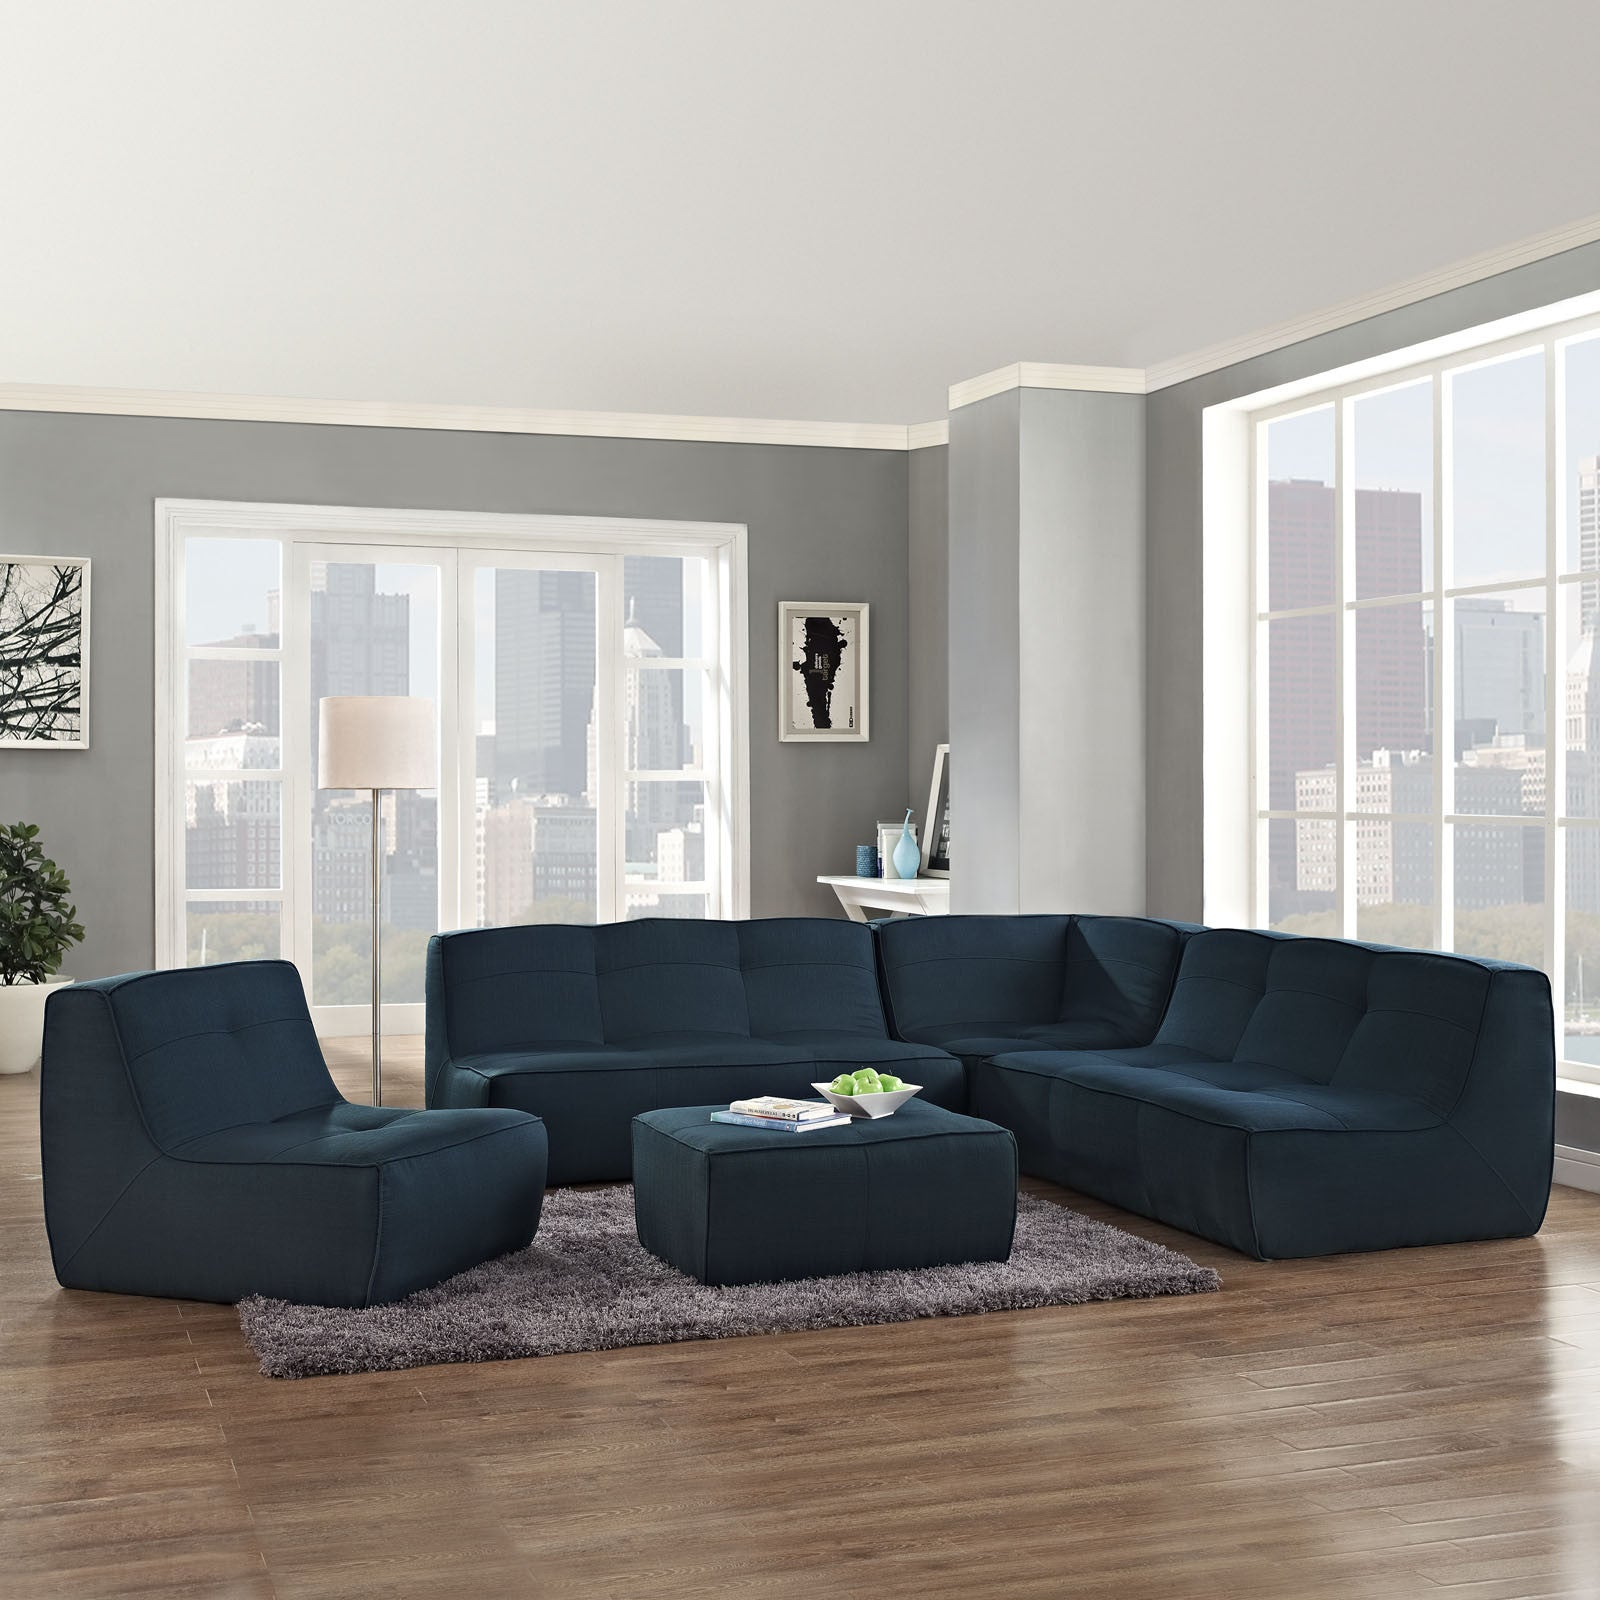 Azure 5 Piece Sectional Sofa Set, Design, Art Urbane, Art Urbane ...